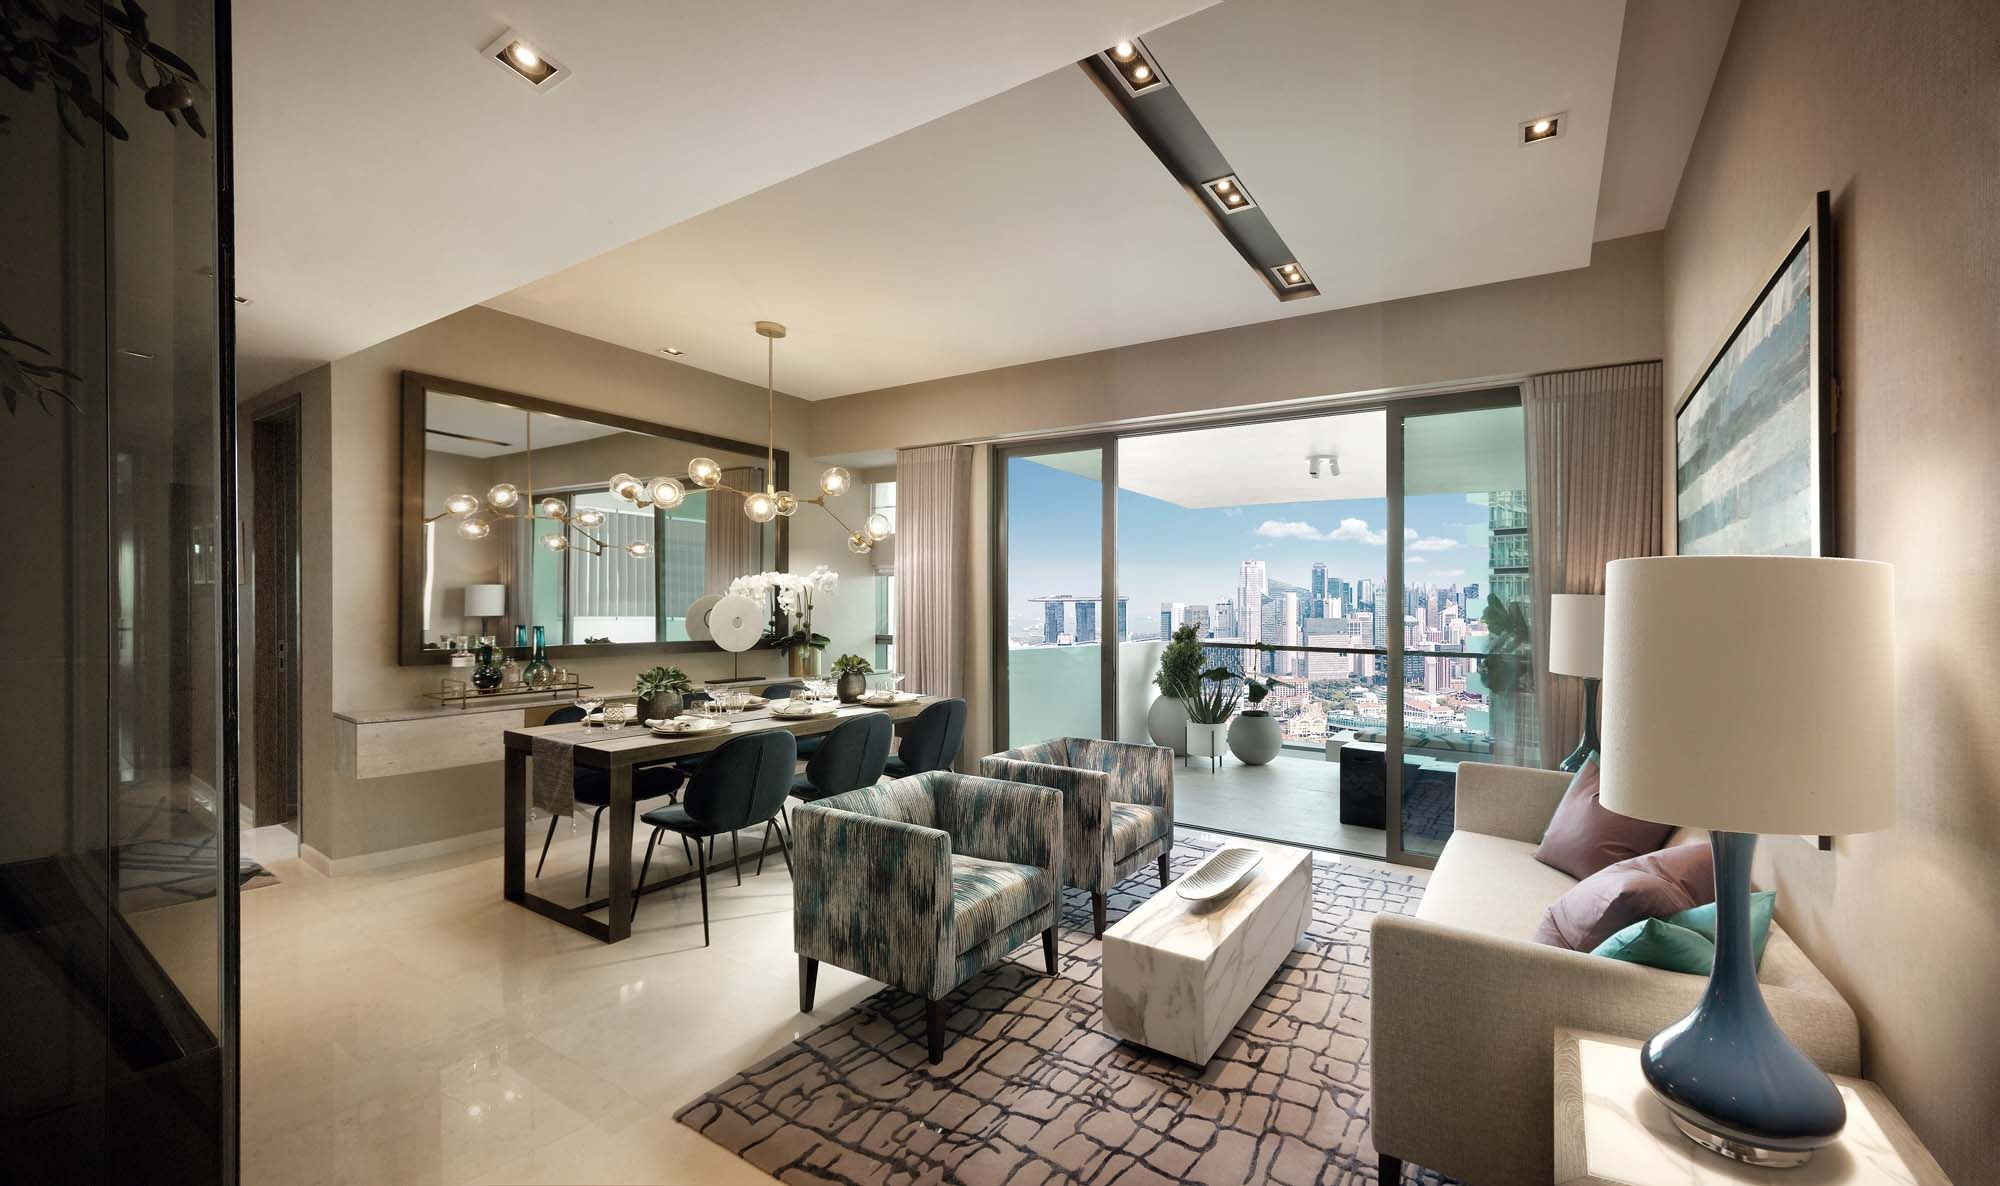 The work of boutique firm Janet McGlennon Interiors, this show unit features modern interiors inspired by its stunning city views